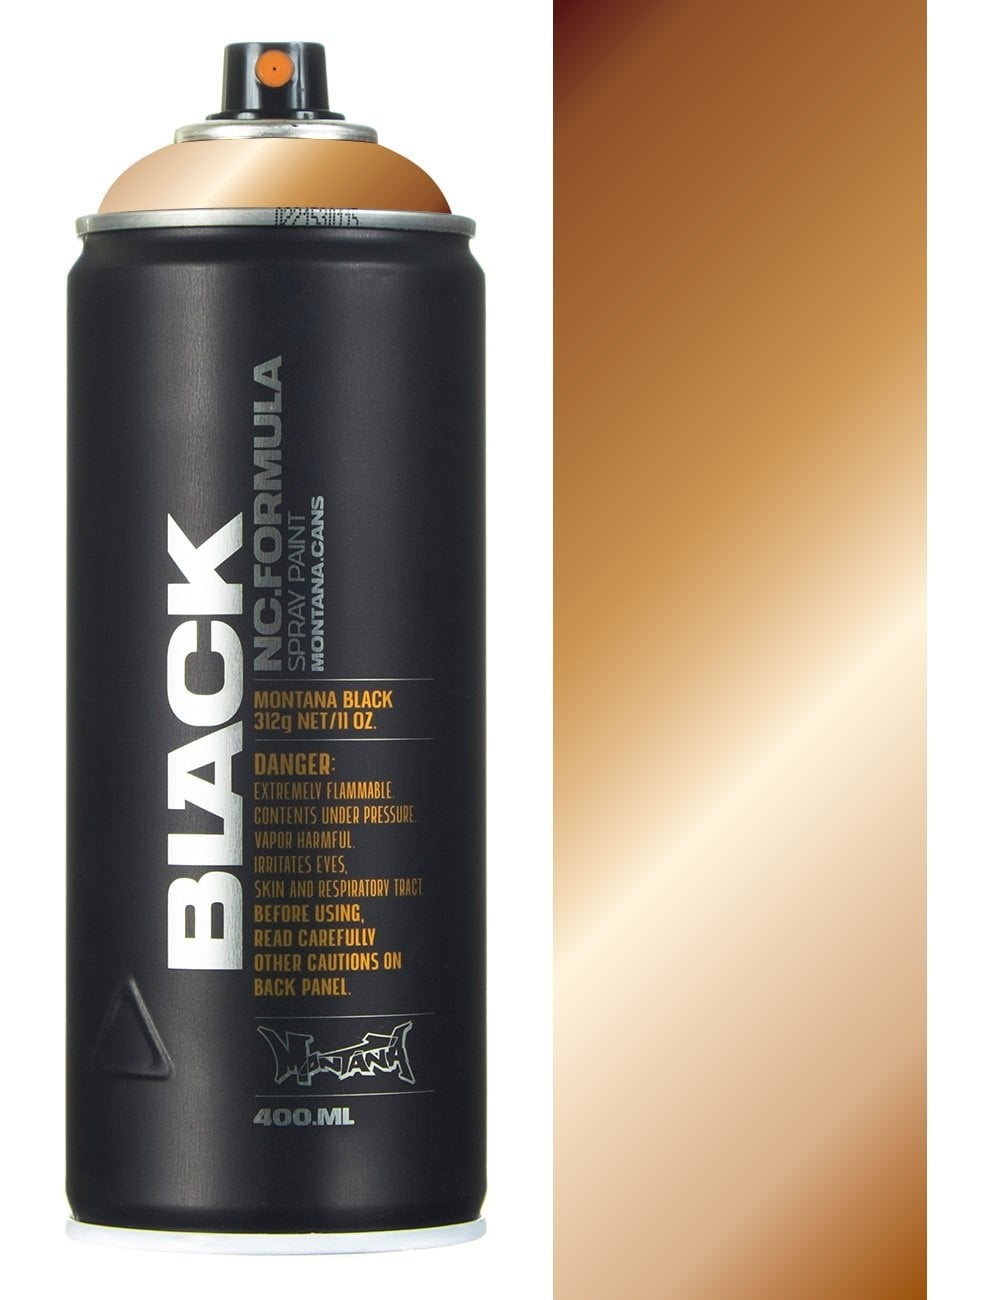 Montana black copper chrome spray paint 400ml spray paint supplies from fat buddha store uk Black spray paint